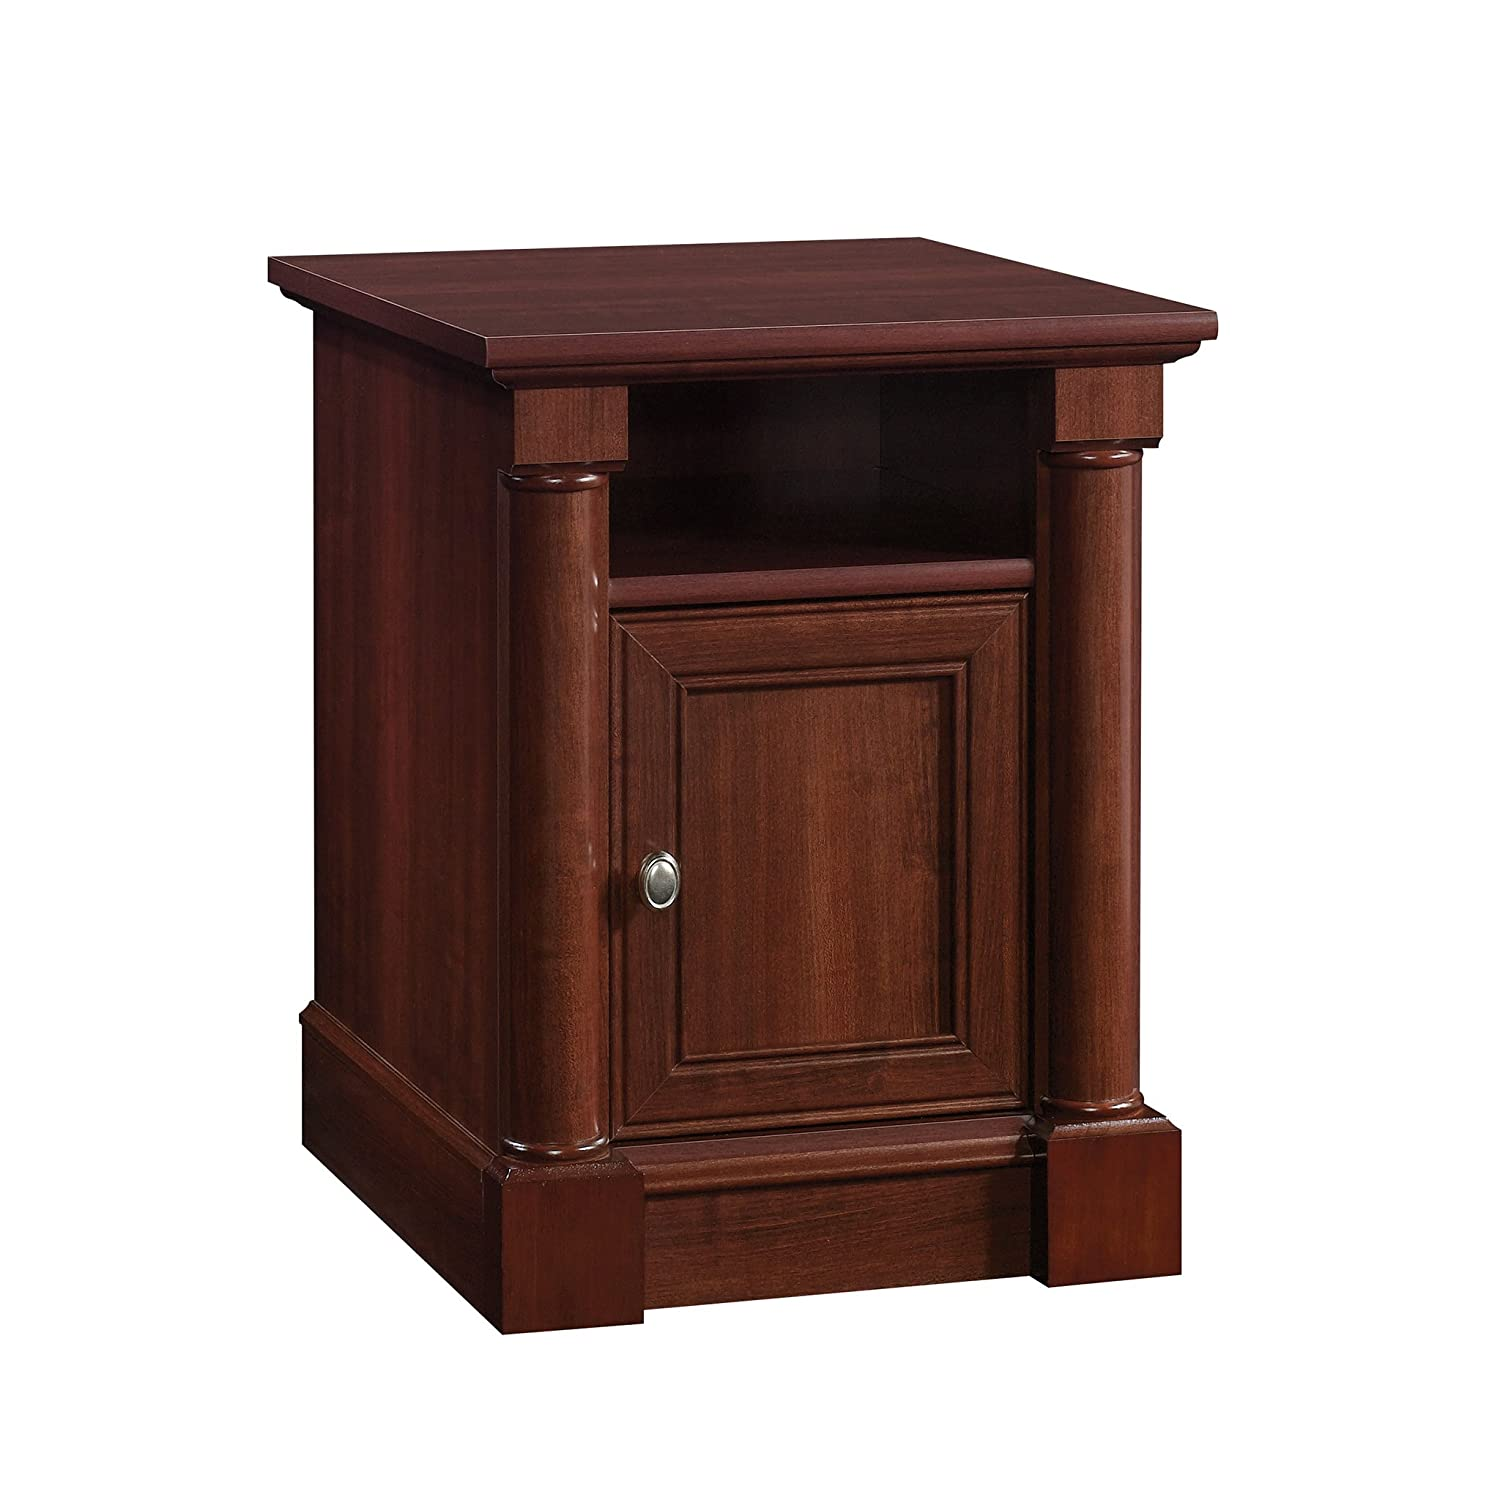 Sauder 420519 Palladia Side Table, Select Cherry Finish Sauder Woodworking